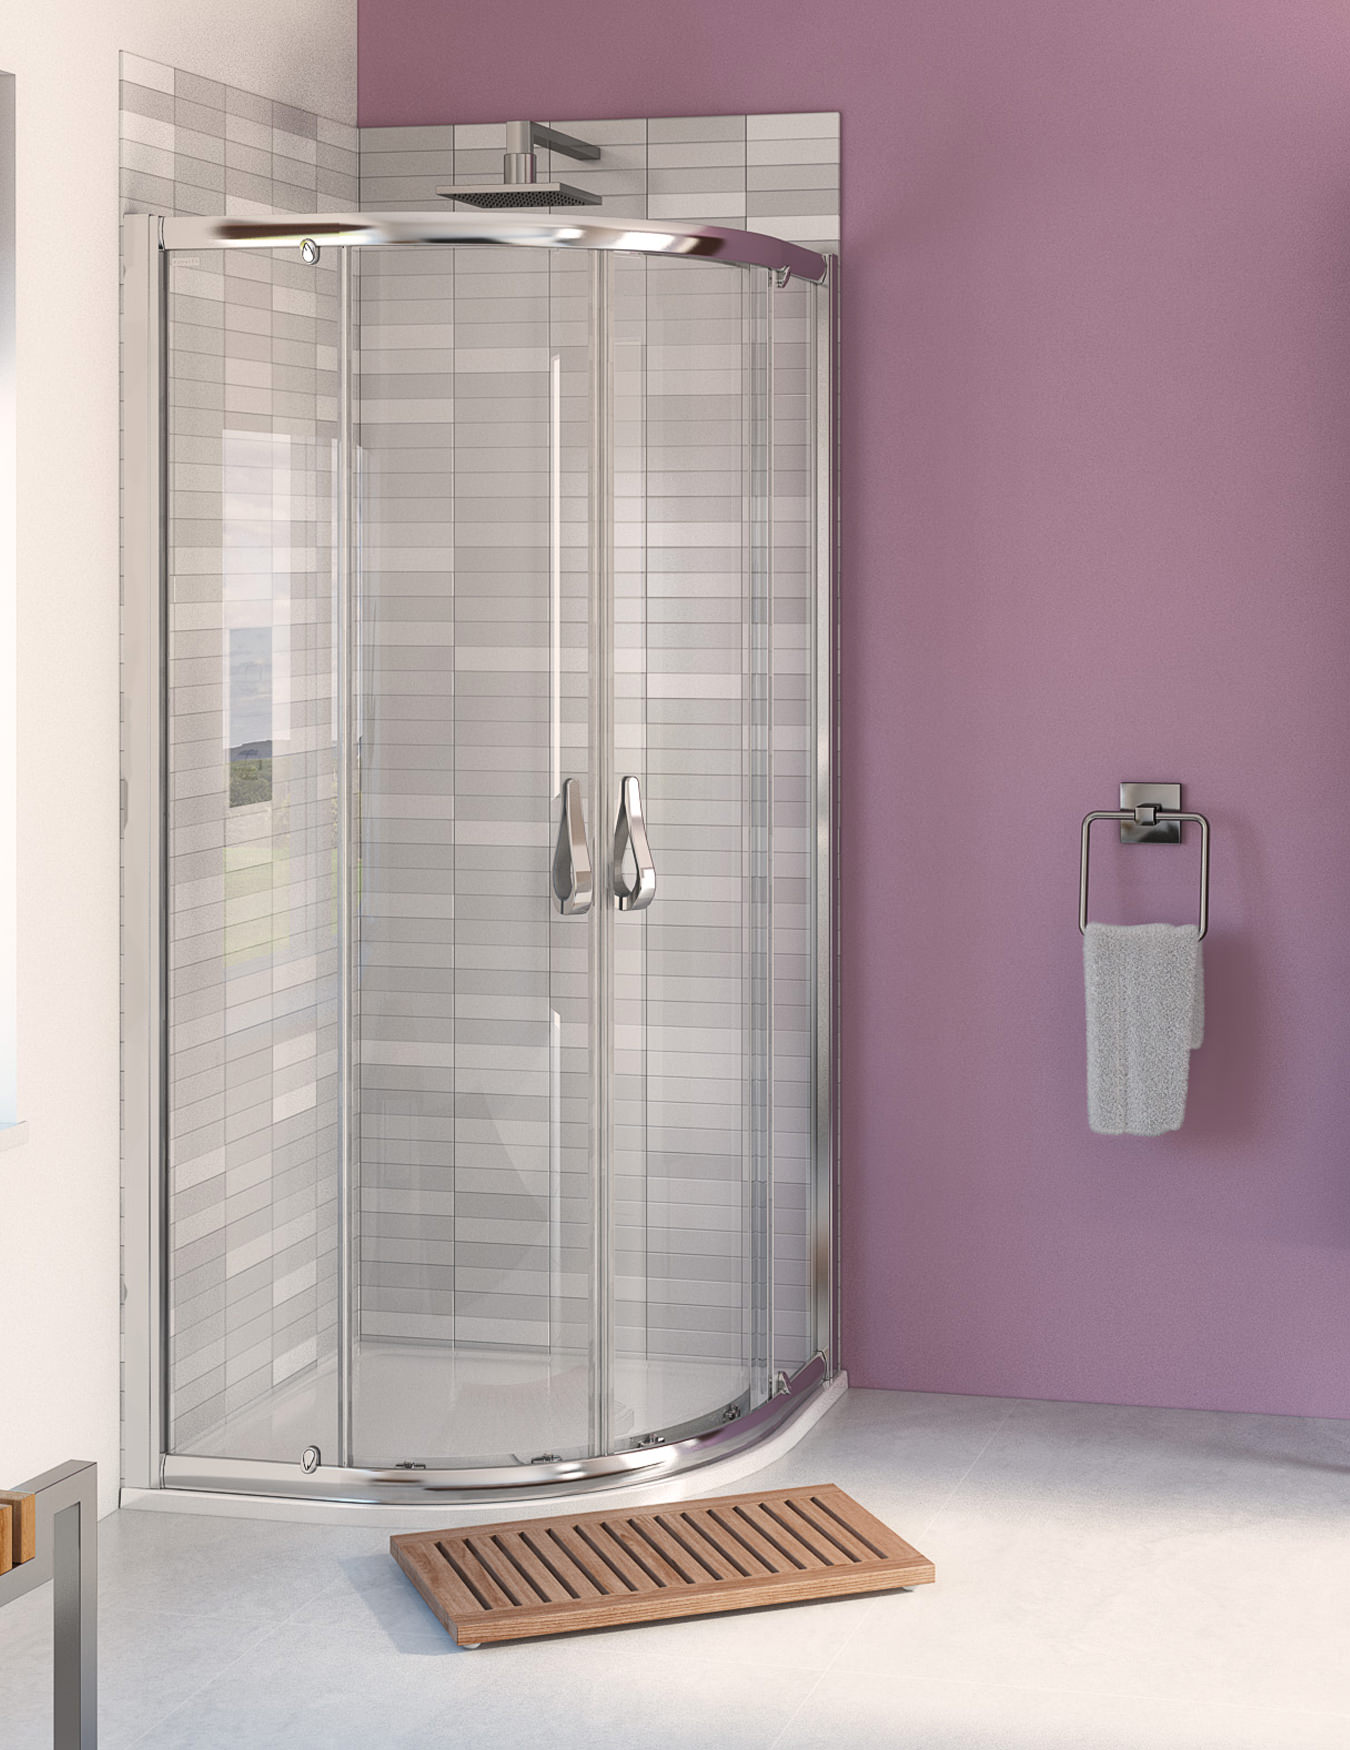 Aqualux Aqua 6 Showers | Aqua 6 Quadrants | Shower Doors | Bath Screens